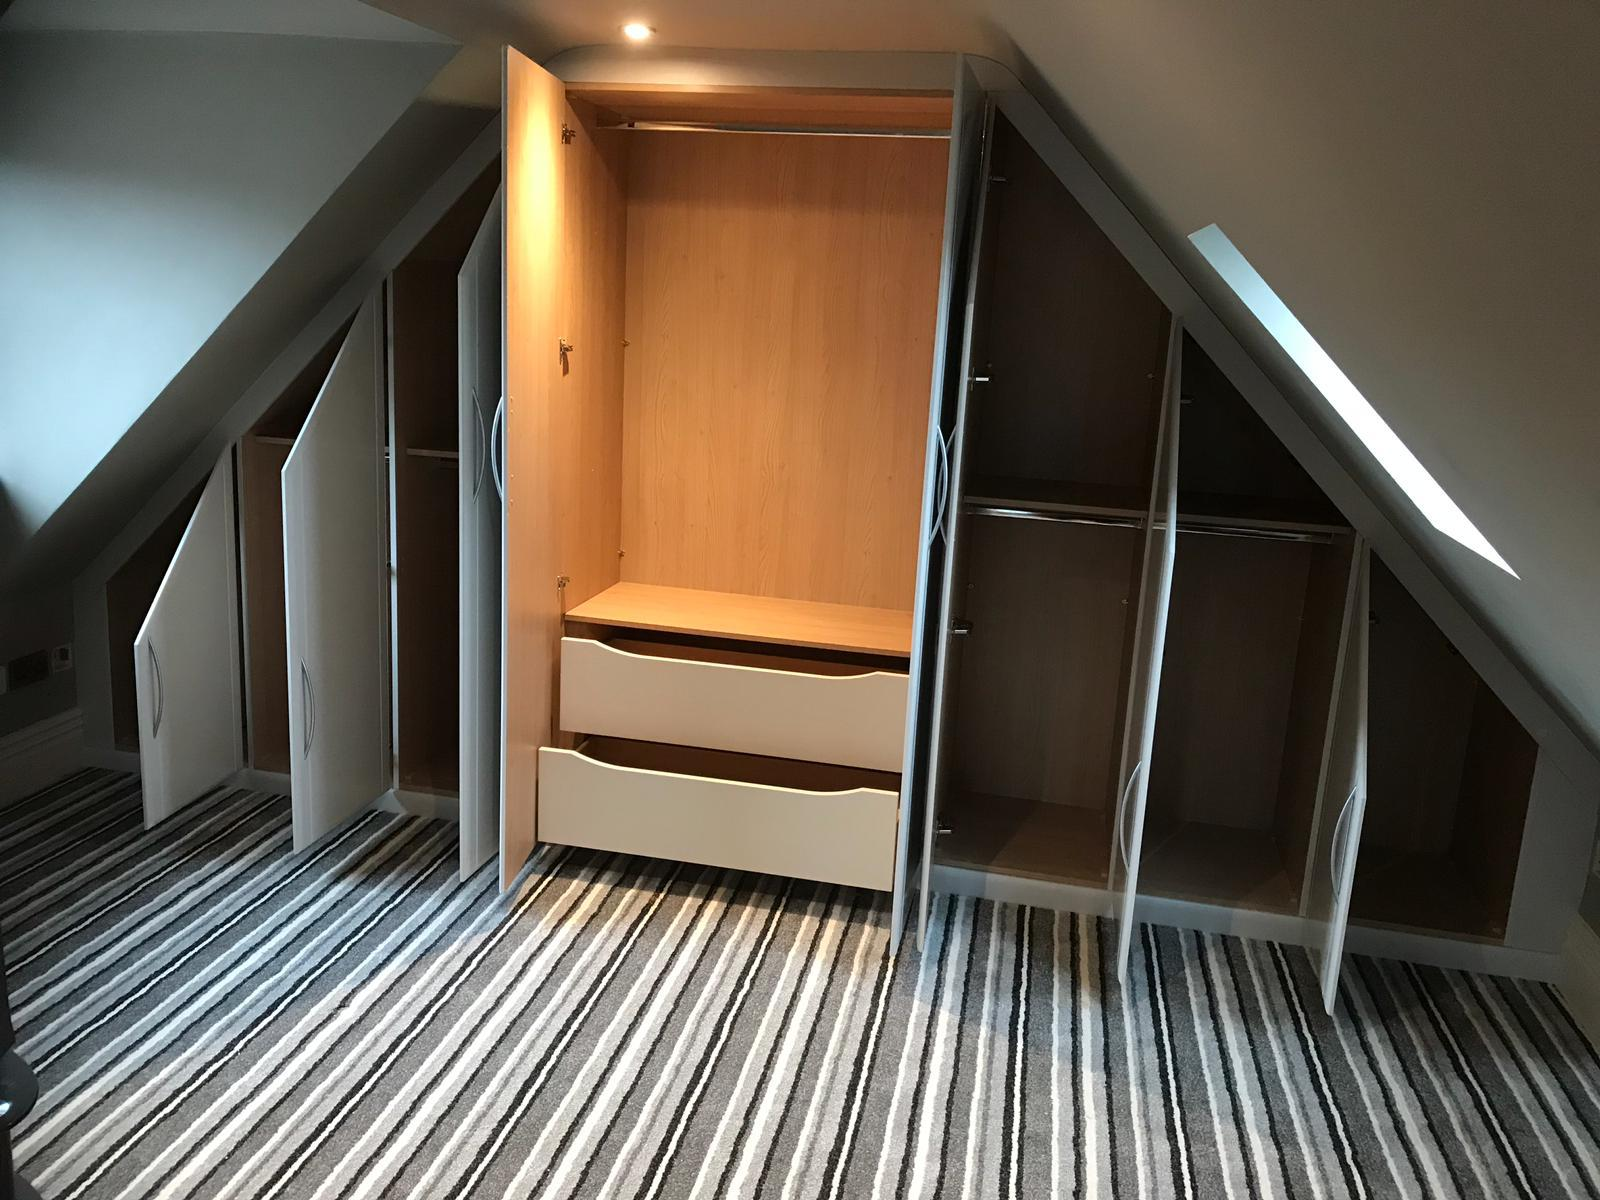 Bespoke bedroom wardrobes for curved ceilings